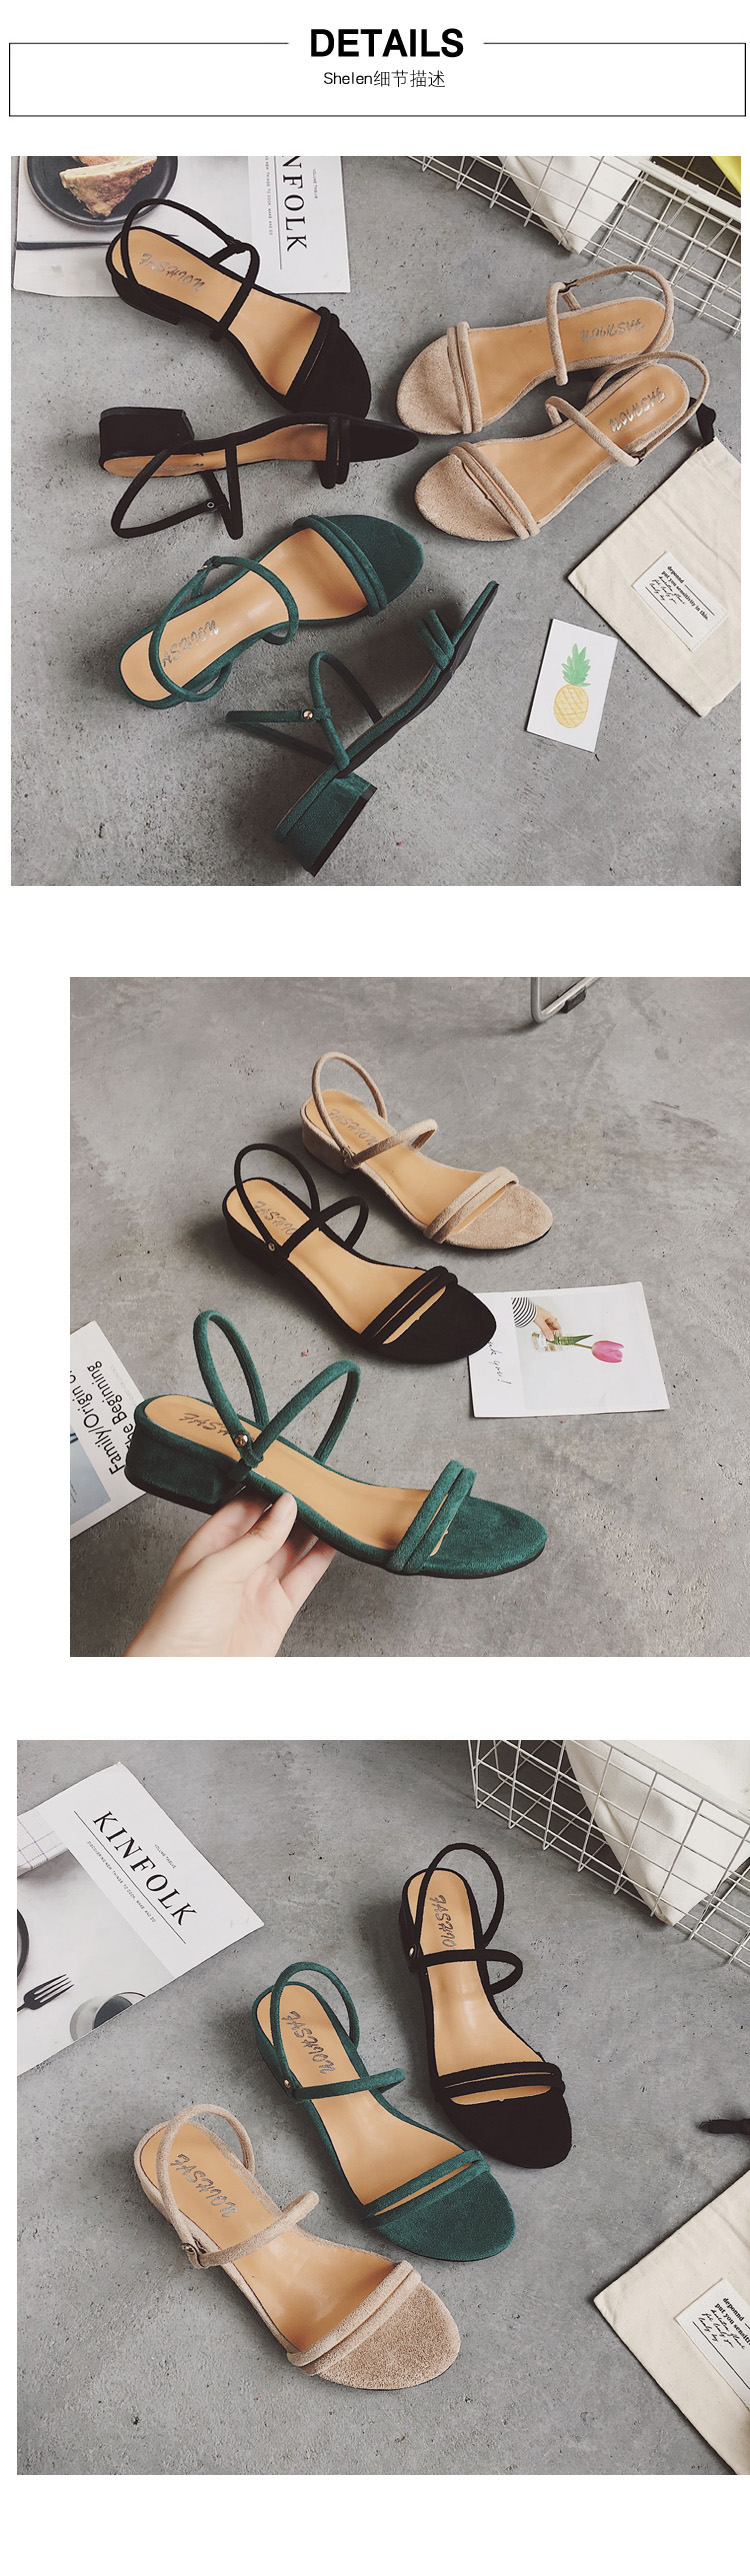 HTB1oANcOMHqK1RjSZJnq6zNLpXaf new Flat outdoor slippers Sandals foot ring straps Roman sandals low slope with women's shoes low heel shoes Sandals mujer